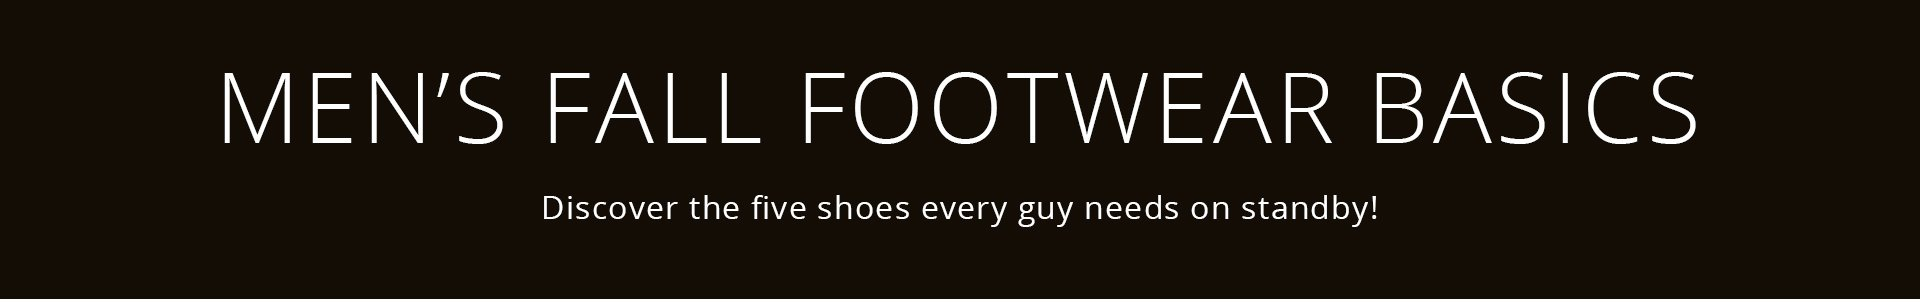 MEN'S FALL FOOTWEAR BASICS: Discover the five shoes every guy needs on standby!